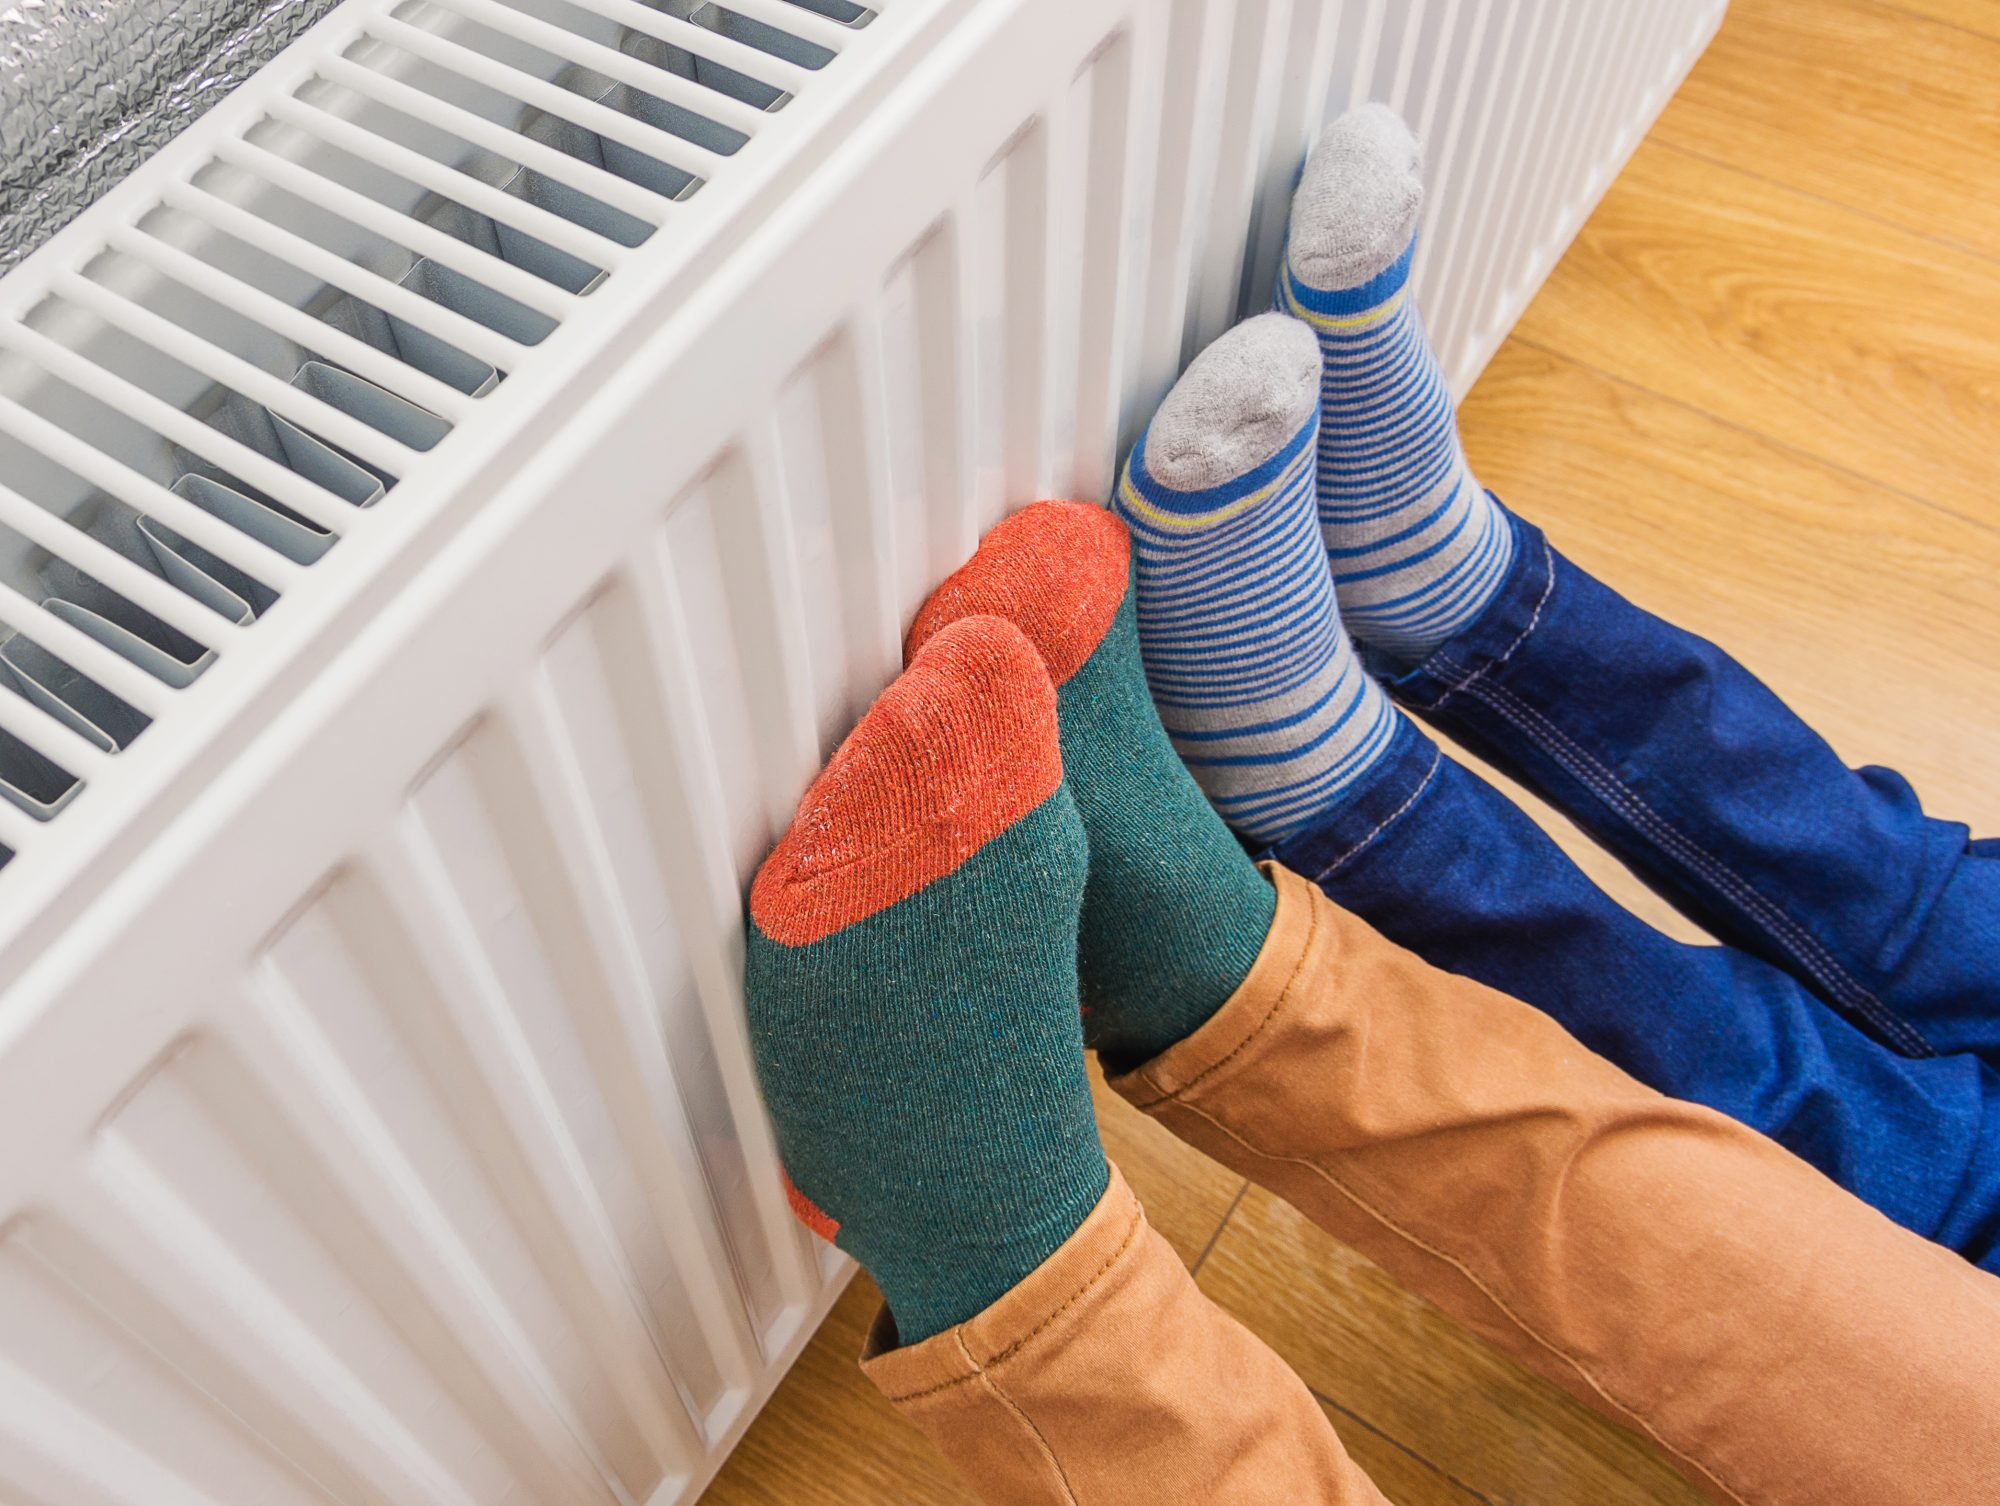 Parent and Child Wearing Socks, Keeping Feet Warm on Radiator